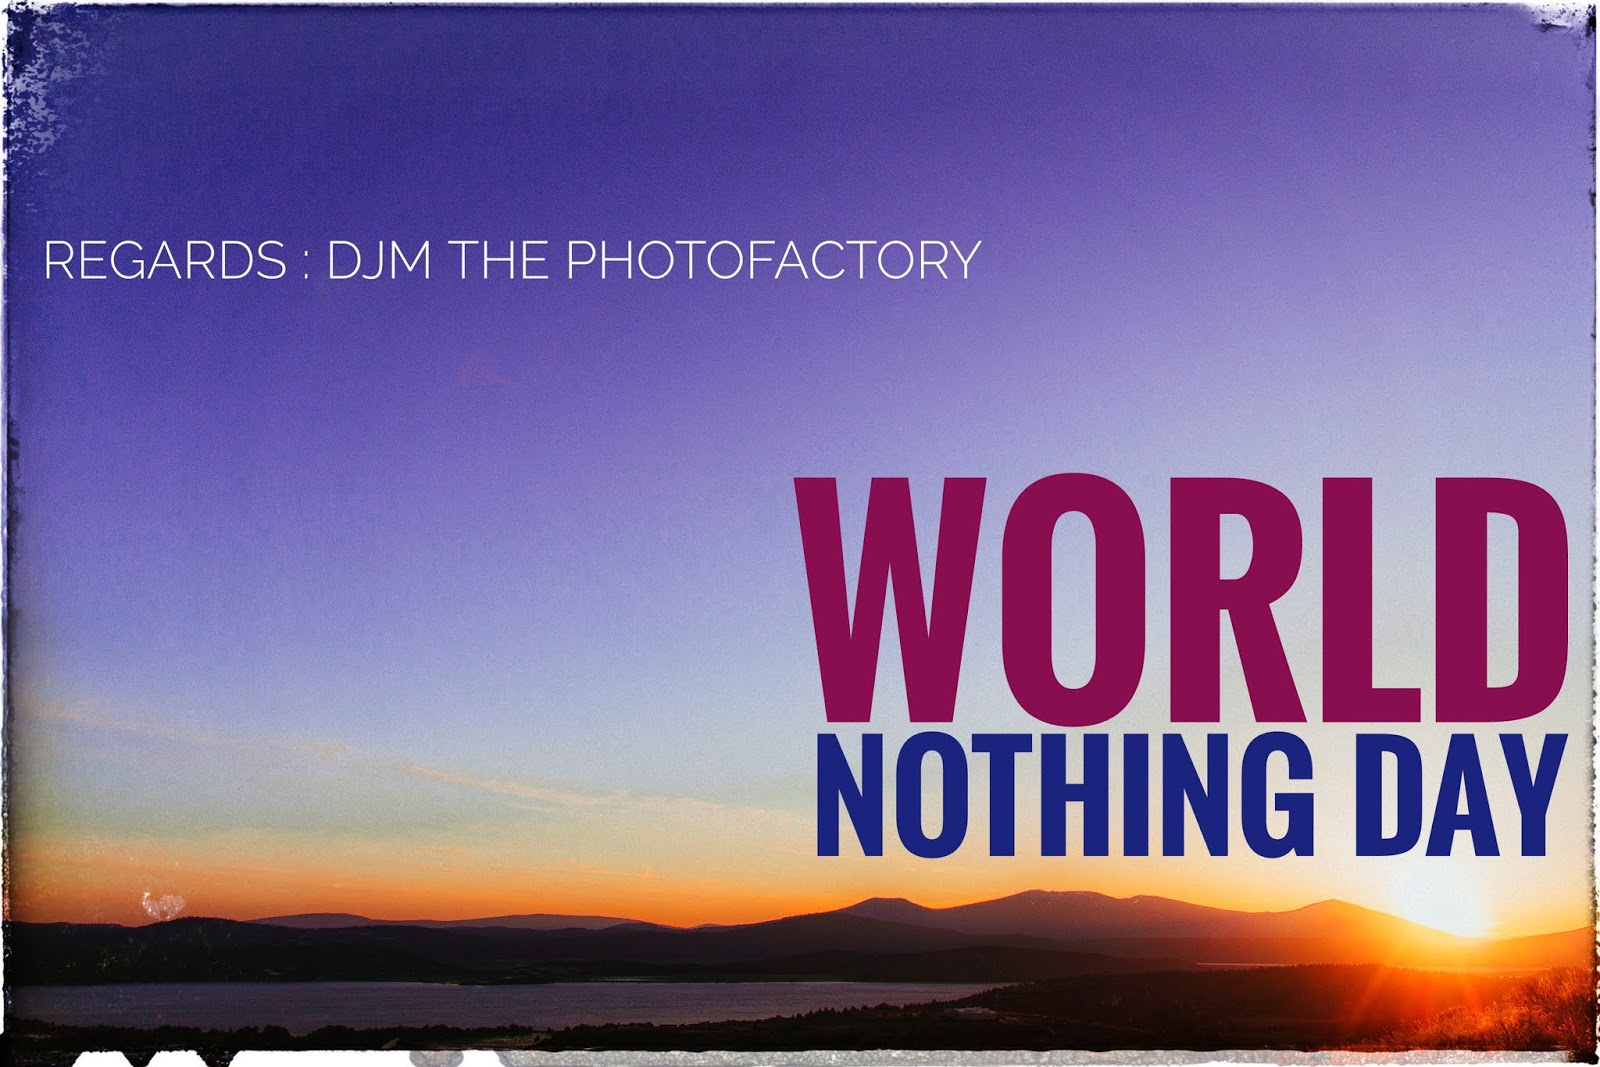 National nothing day 2020 wishes images photos greetings